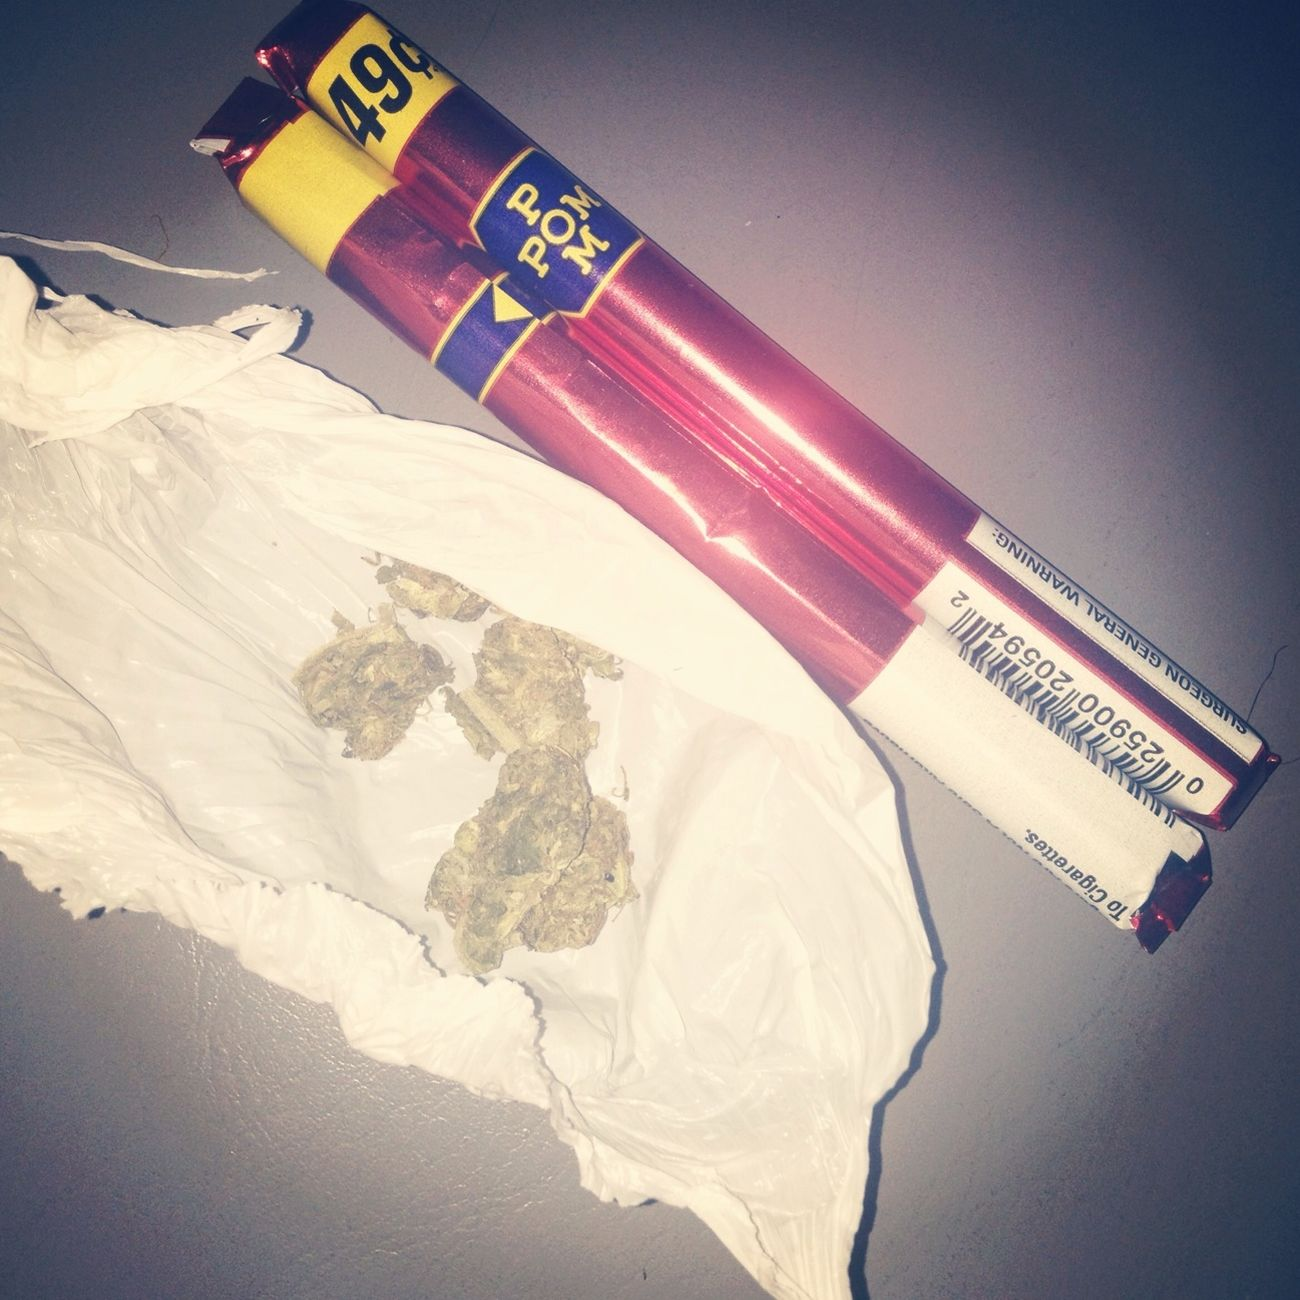 I Be Smoke Dope Shit Thats Everyday #Chief'n